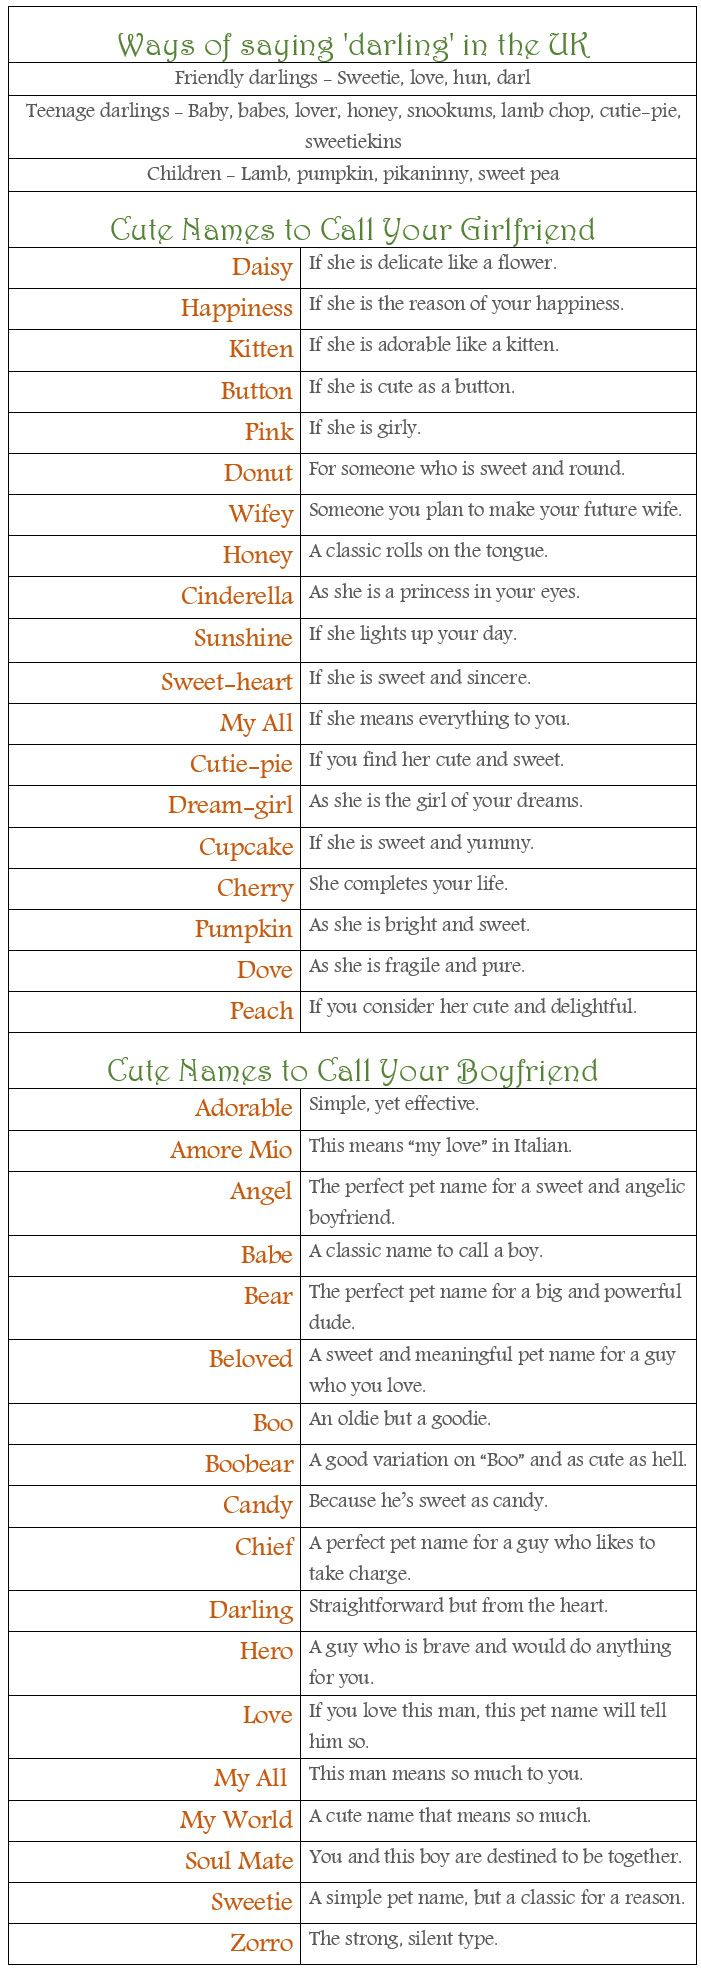 silly pet names for girlfriend